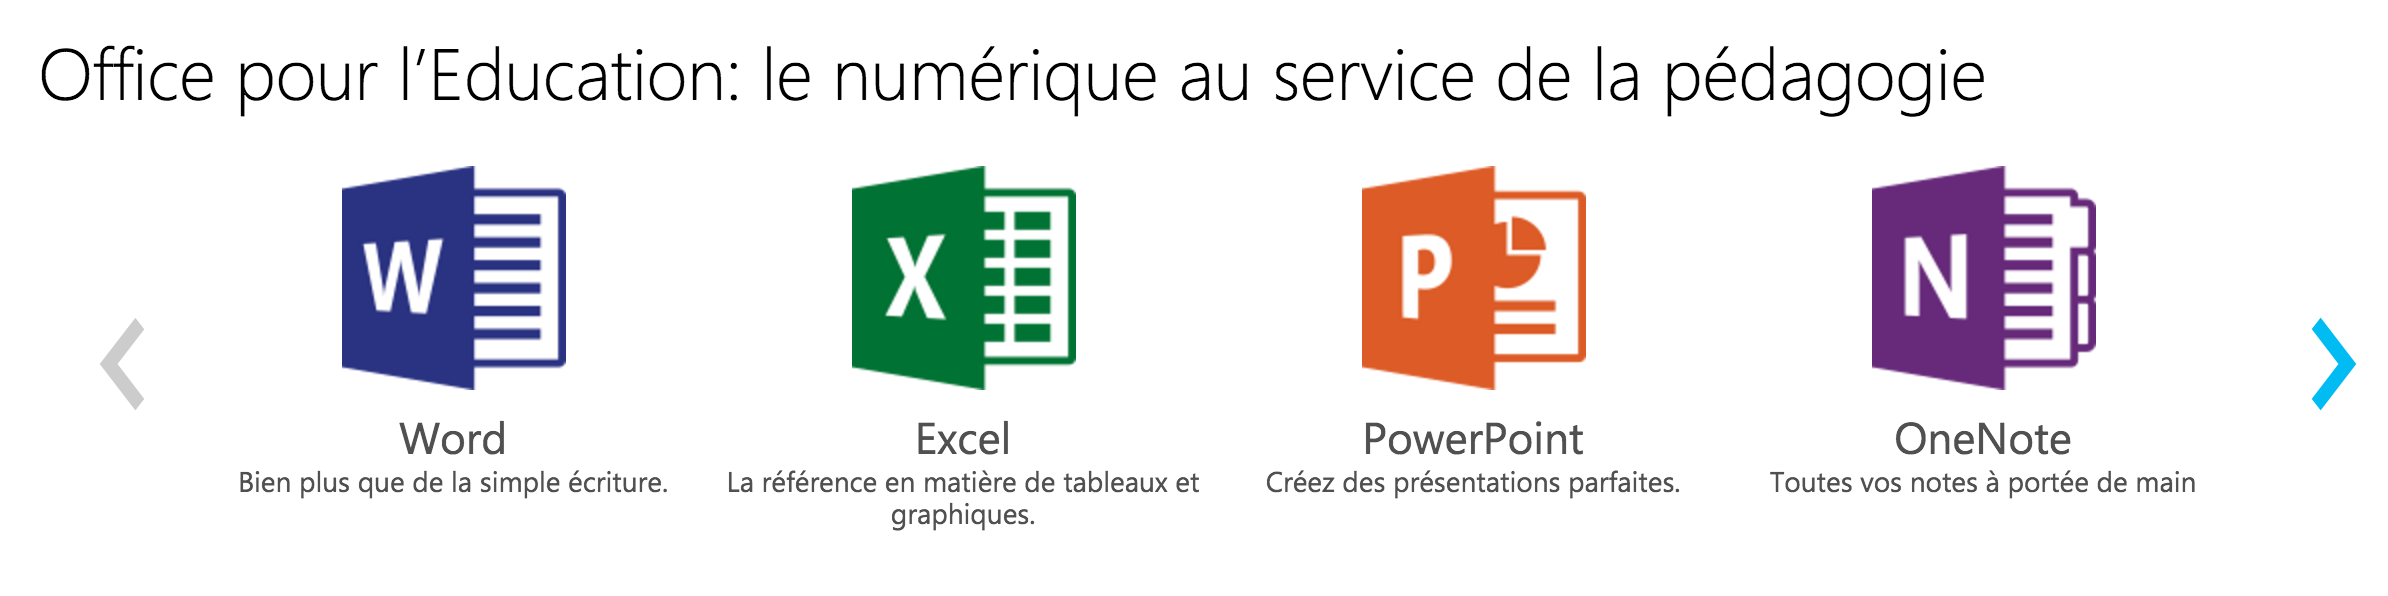 Microsoft office 365 gratuit pour les tudiants et enseignants - Telecharger writer open office gratuit ...